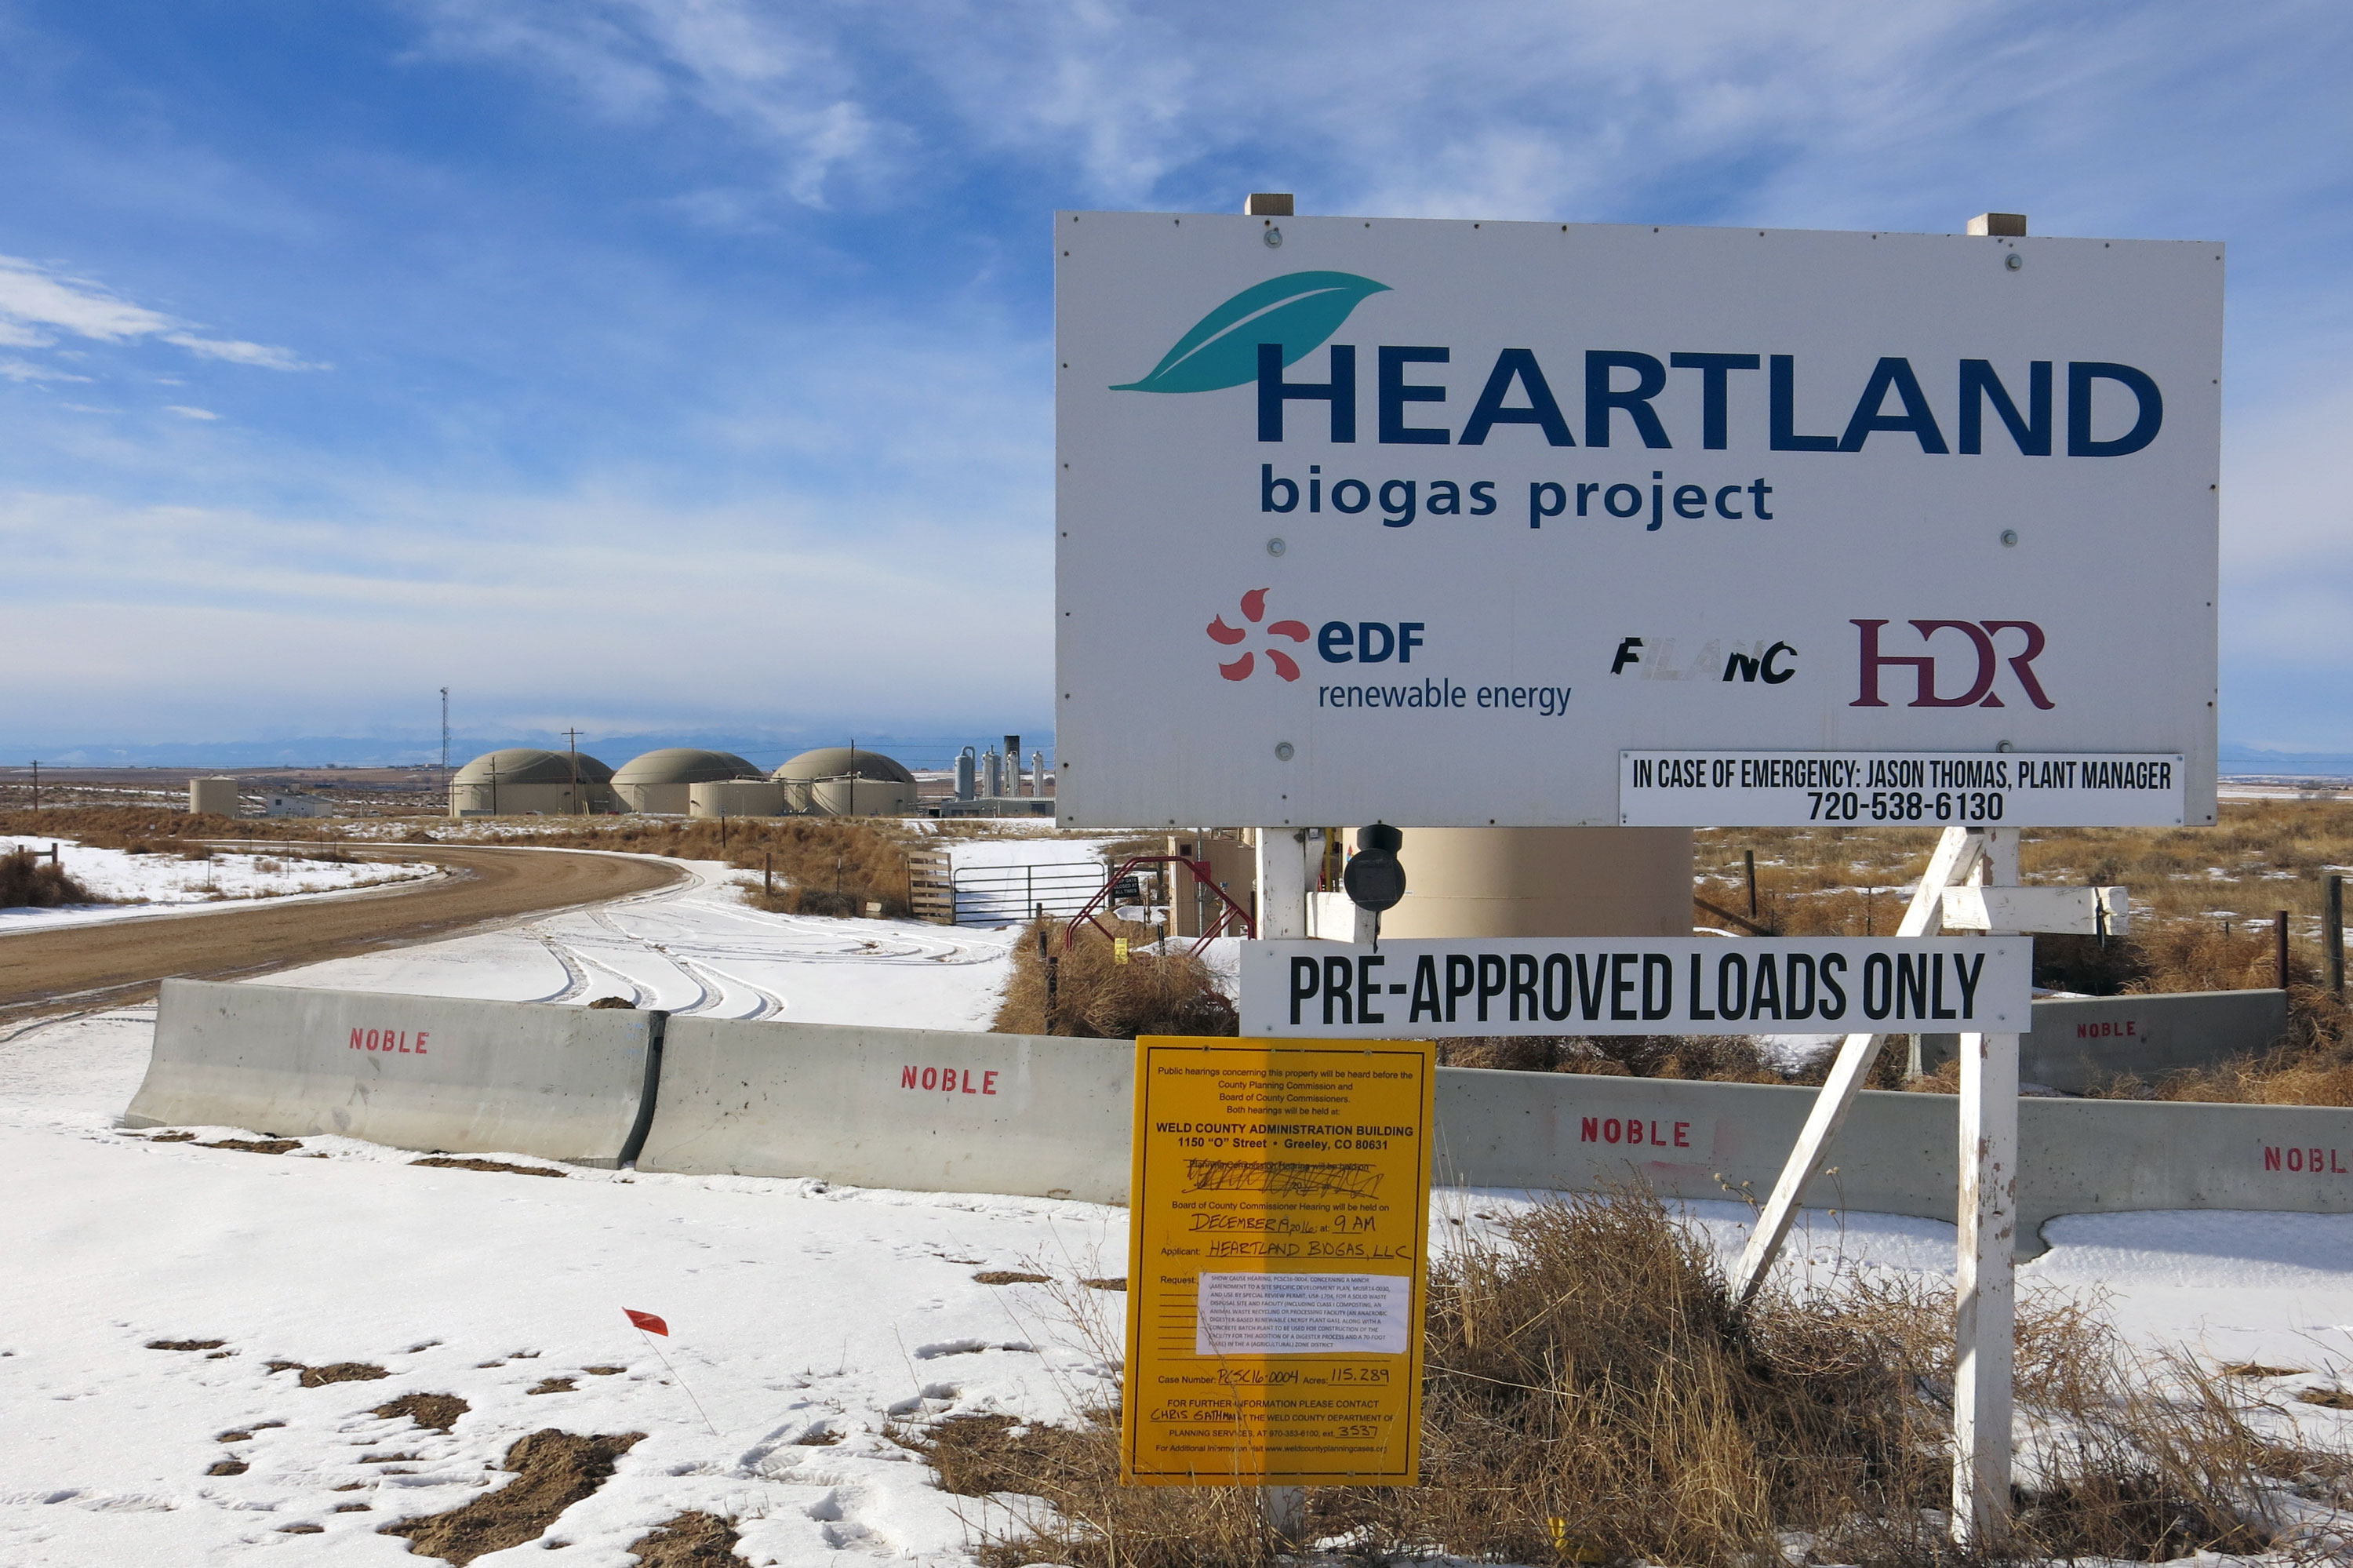 Fed Up With The Smell, Neighbors Want The Weld County Biogas Project